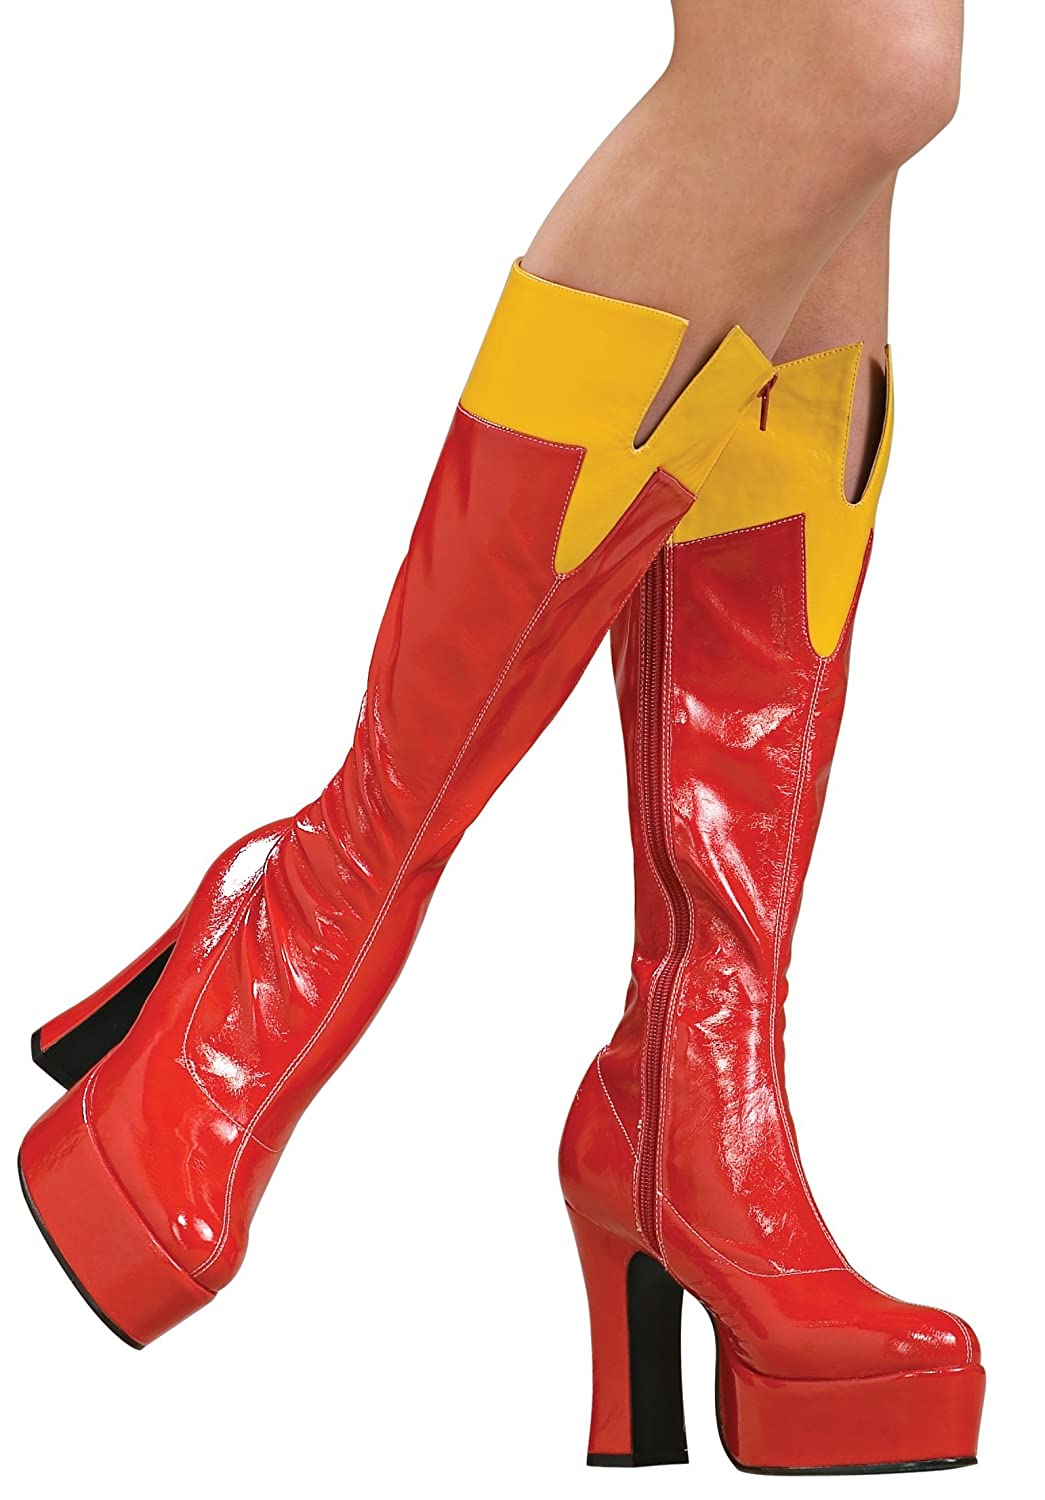 Rubie's Supergirl Officially Licensed Boots Rubies Costumes - Apparel 884018